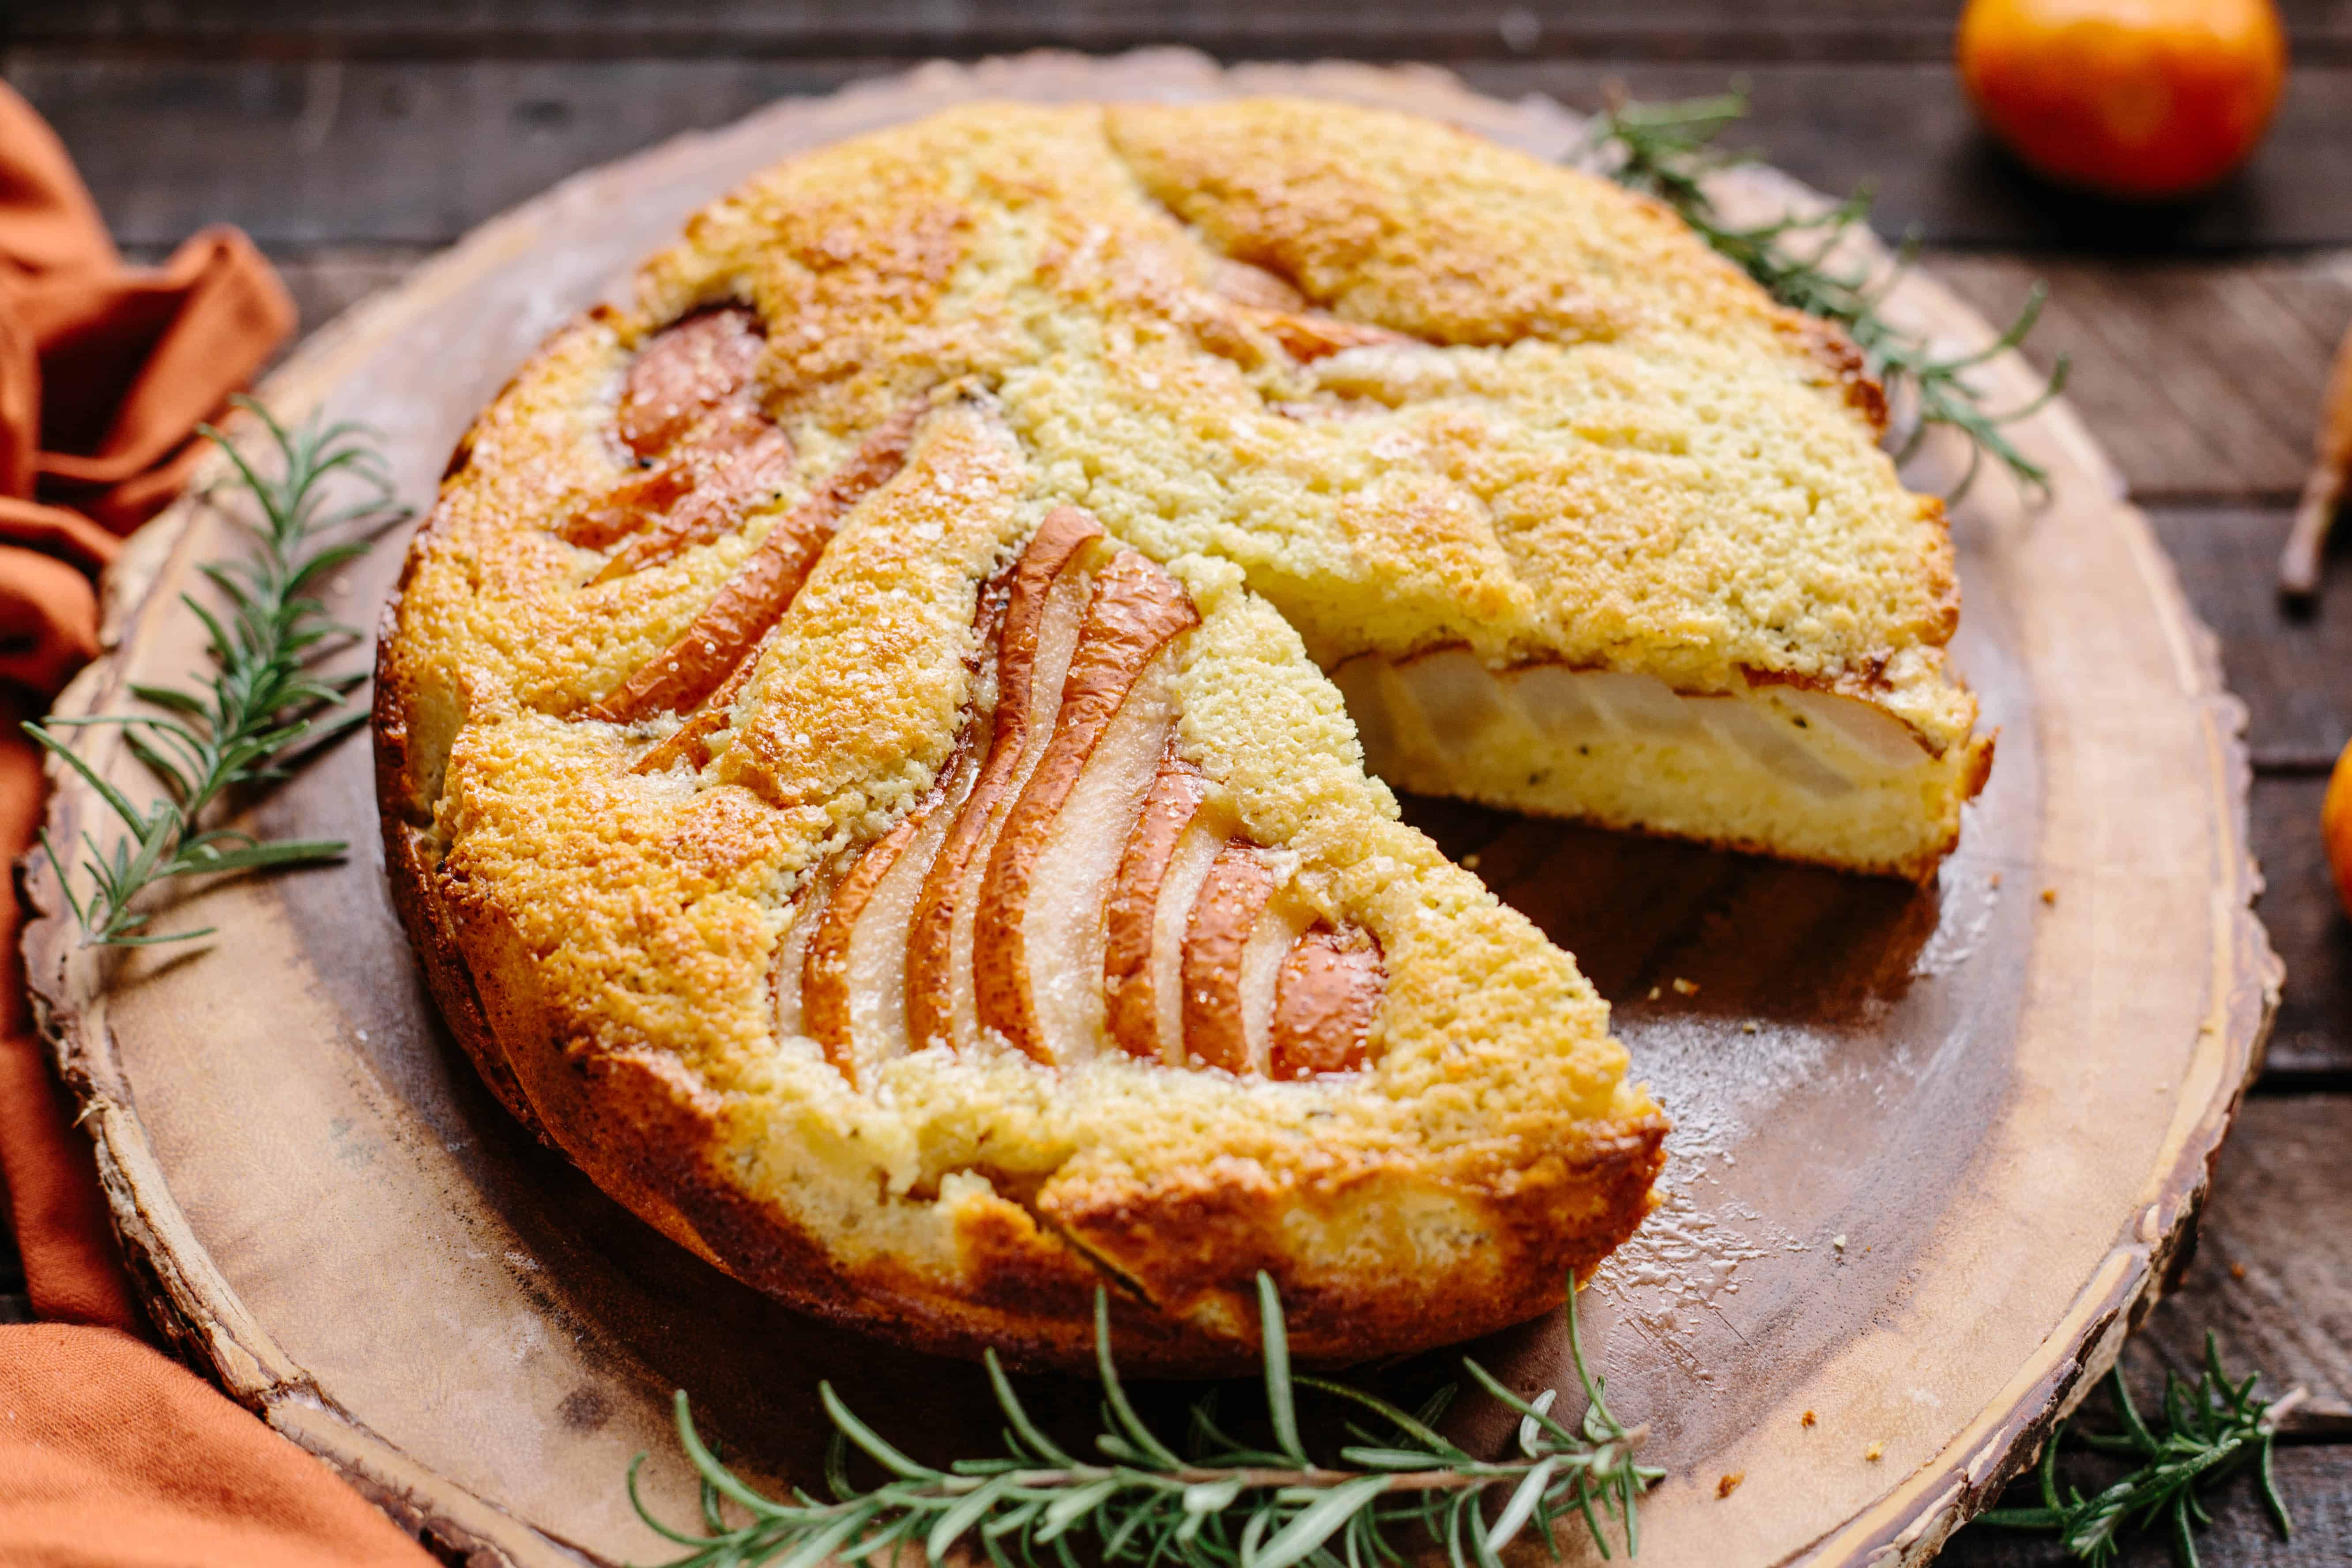 Ricotta + Pear Cake   This beautiful fall cake is made with fresh ricotta and pears, scented with orange and rosemary and makes a perfect Thanksgiving dessert! #thanksgiving #recipe #pear #ricotta #cake #dessert #rosemary #orange #easy   ColeyCooks.com